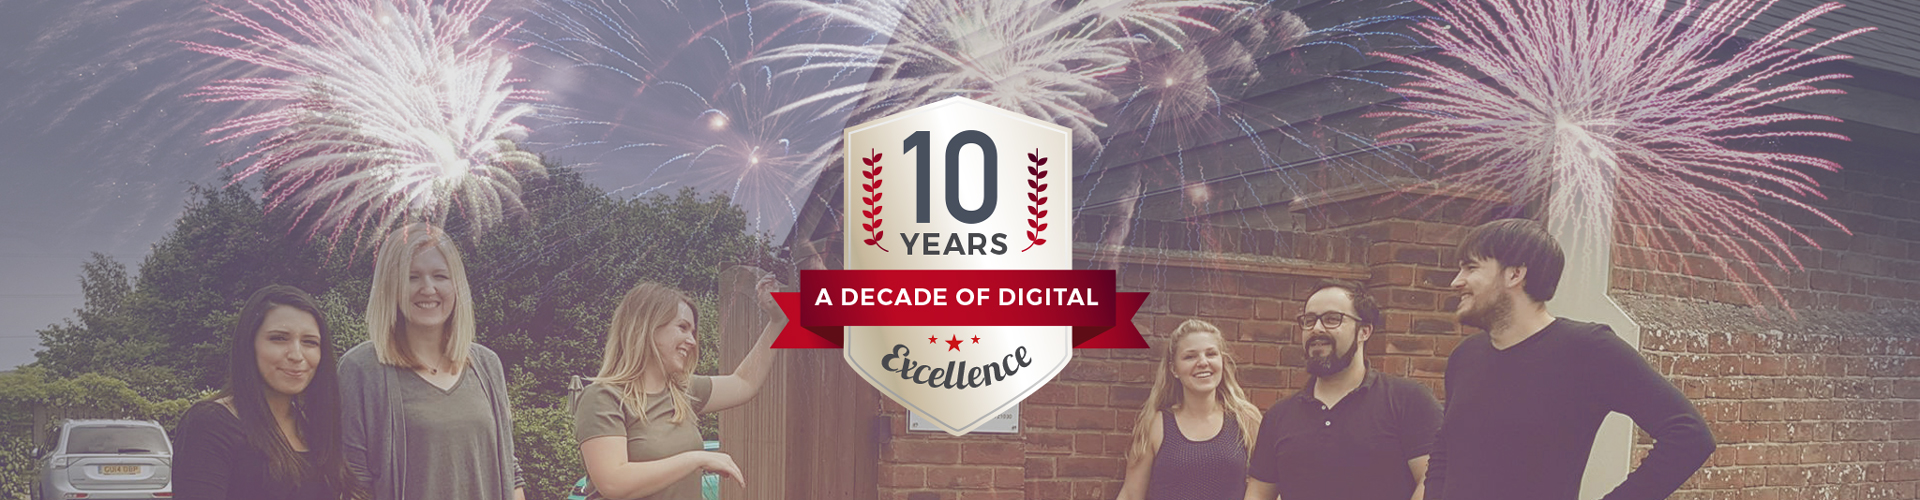 Header image of PageSuite Celebrate 10 Years in Business